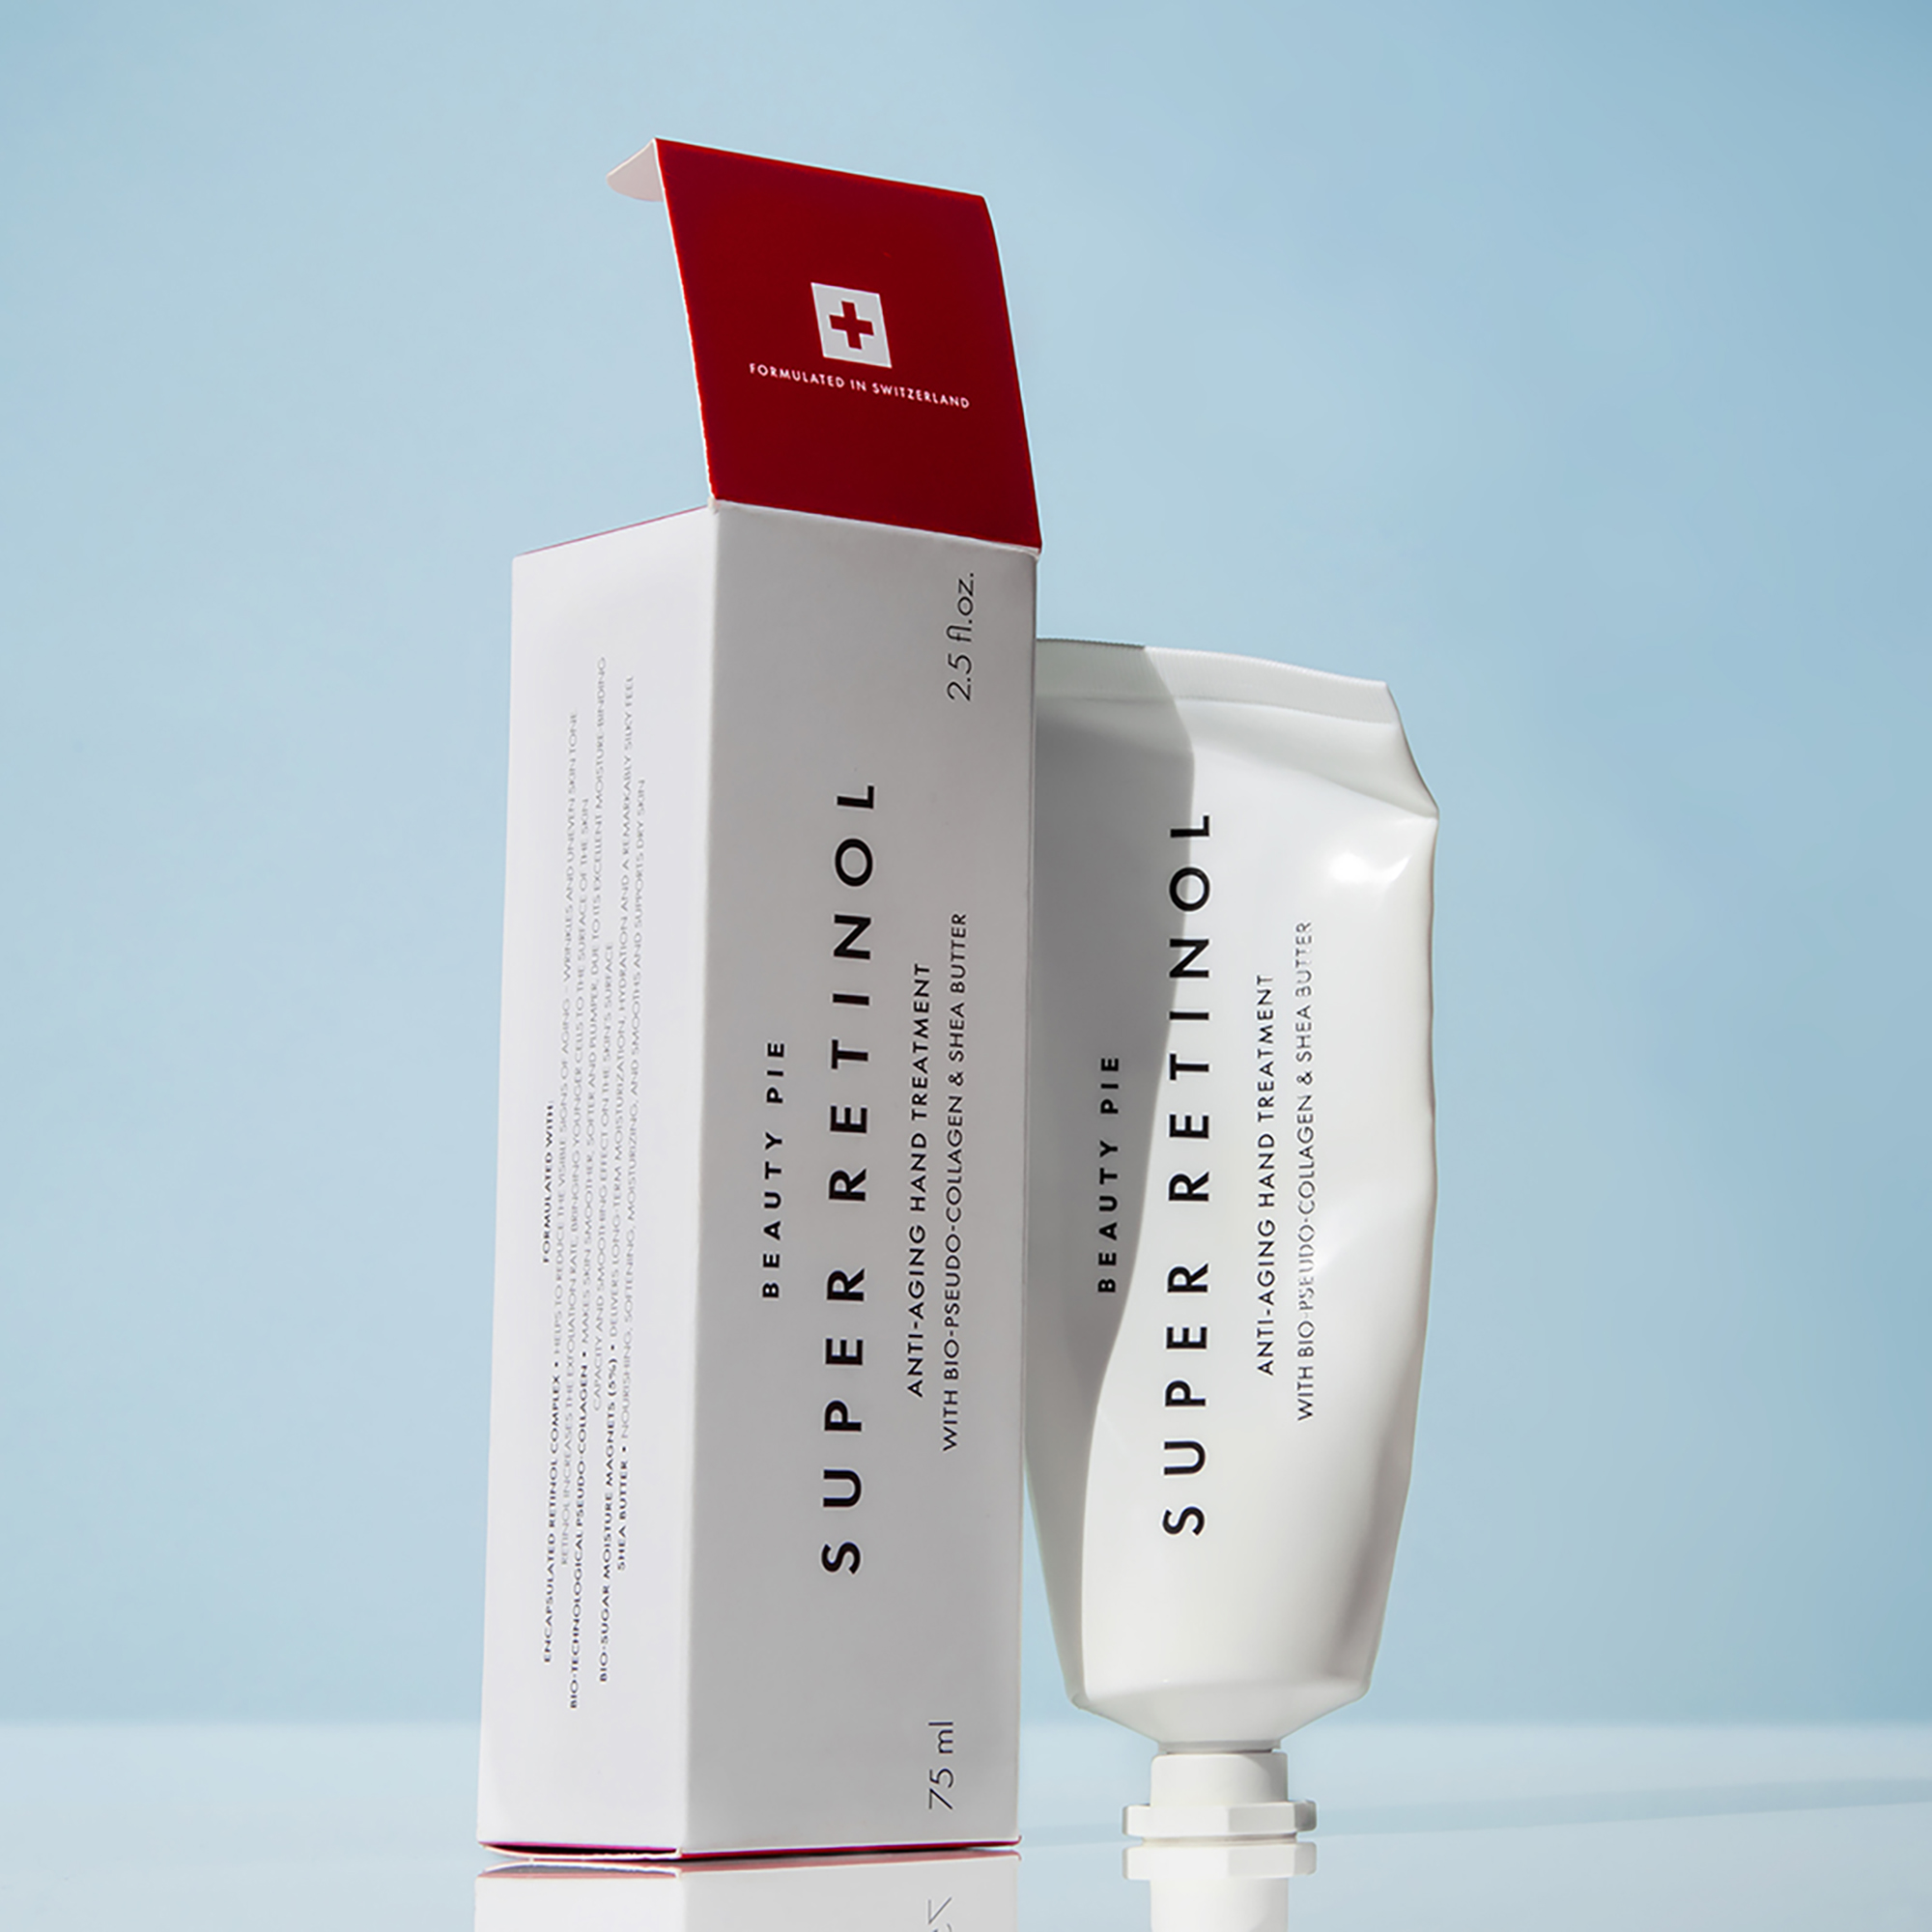 Super Retinol Anti-Aging Hand Treatment by Beauty Pie